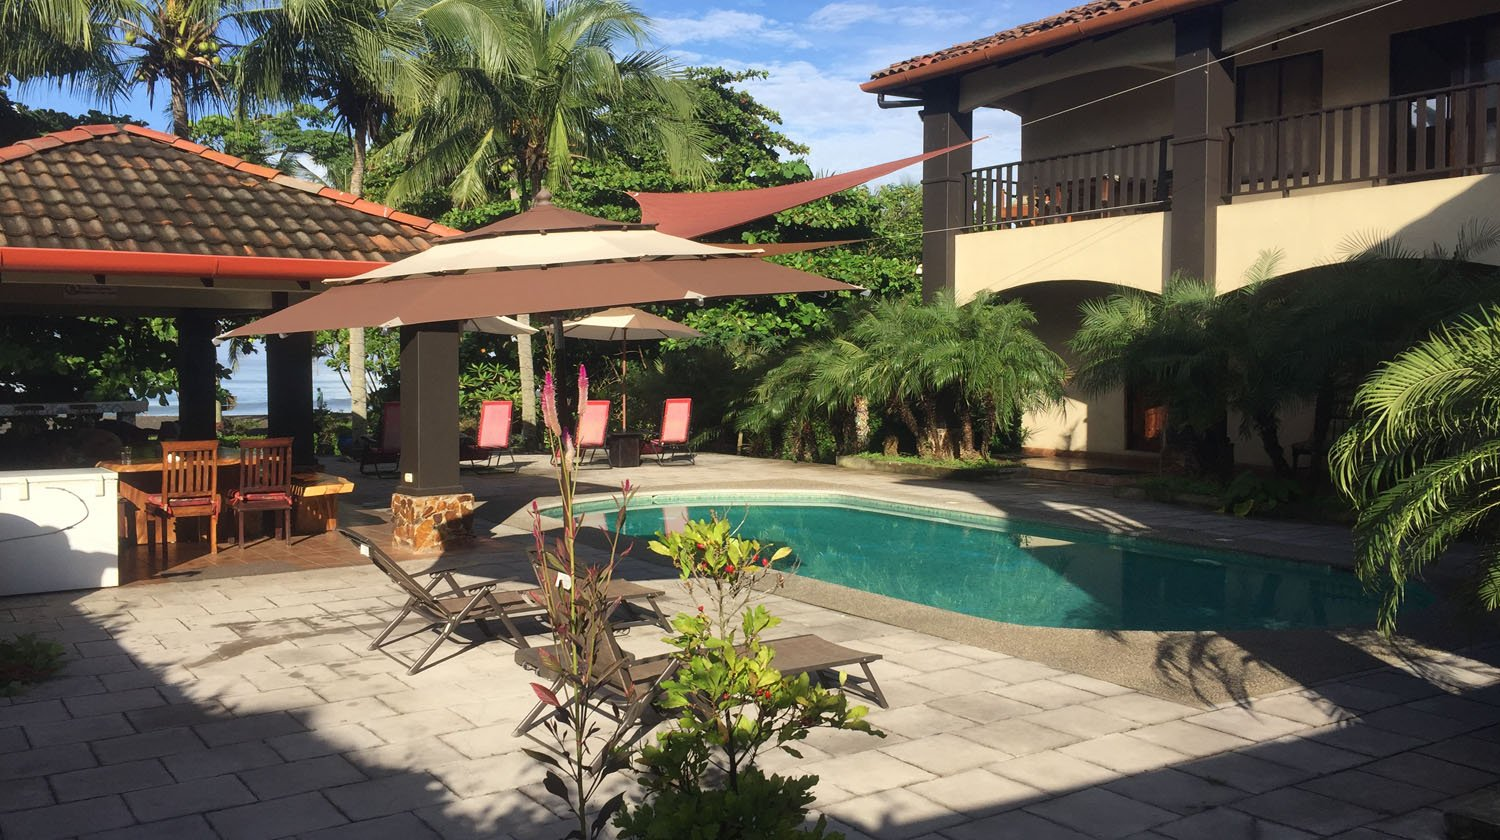 Beach luxury homes properties for rent in jaco costa rica for Luxury rental costa rica